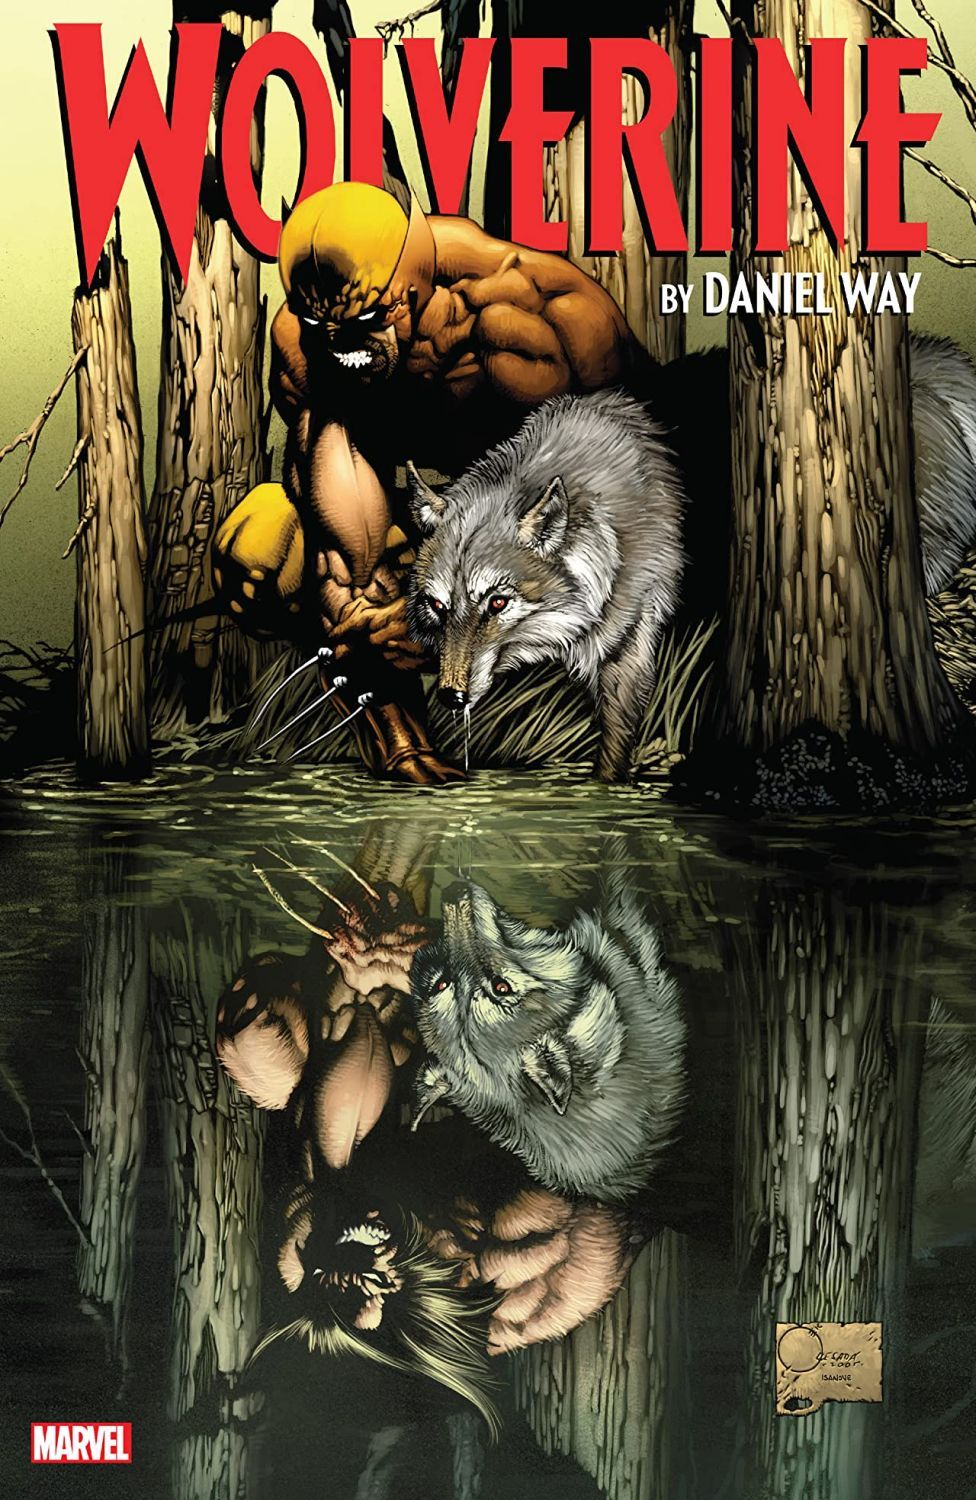 Wolverine by Daniel Way: The Complete Collection Vol. 1 - 1